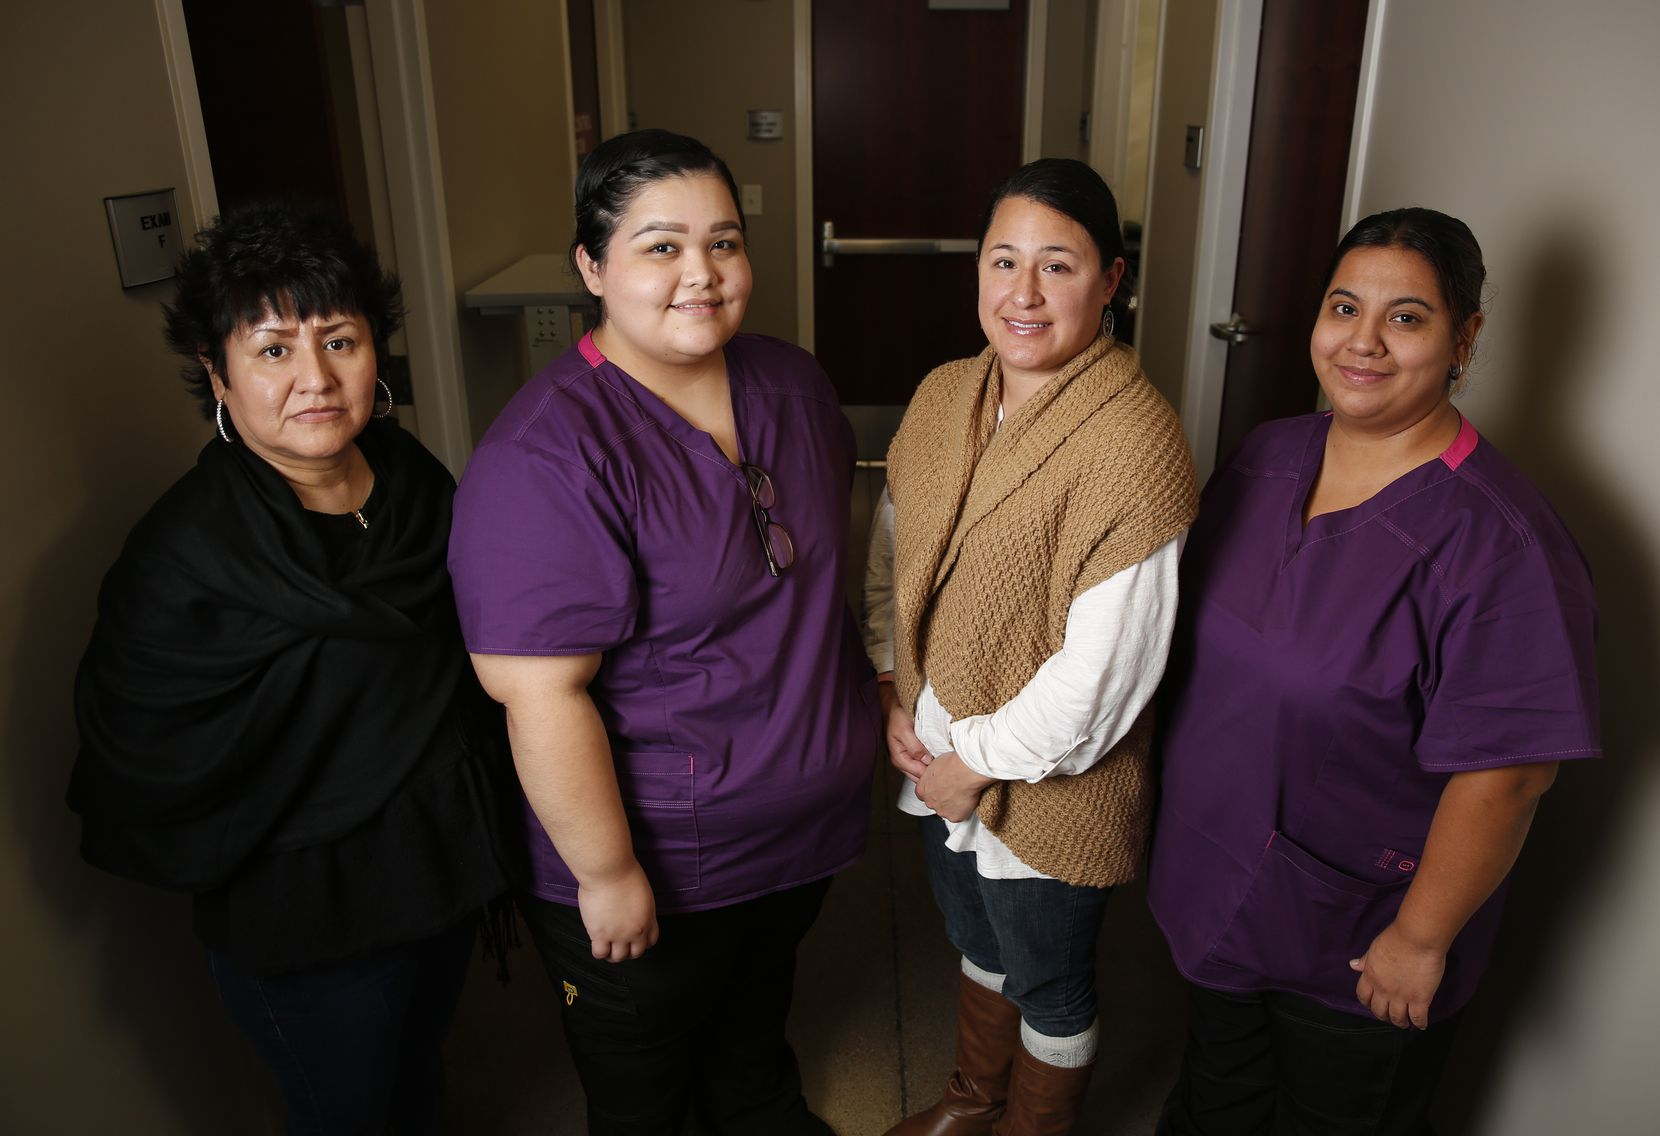 Brother BillÕs Helping Hand clinic staff includes Leticia Balderas (left), receptionist; Priscilla Lopez, medical assistant; Mandy Micheaux, physician's assistant and Kimberly Flores, medical assistant.